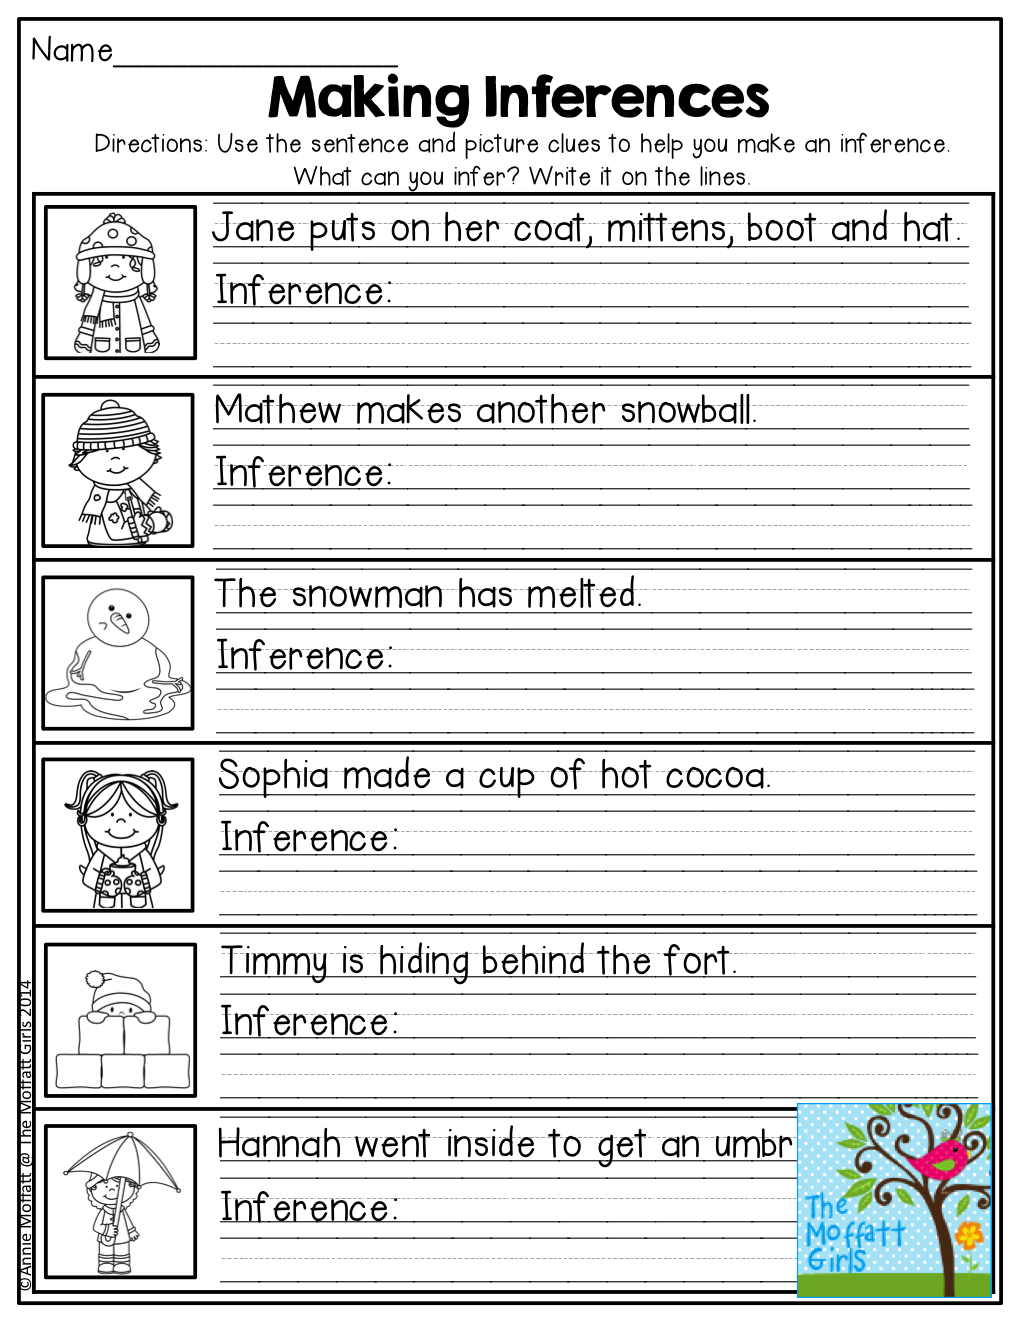 Worksheets Inferences Worksheets january no prep math and literacy 2nd grade making inferences tons of great printables for grade